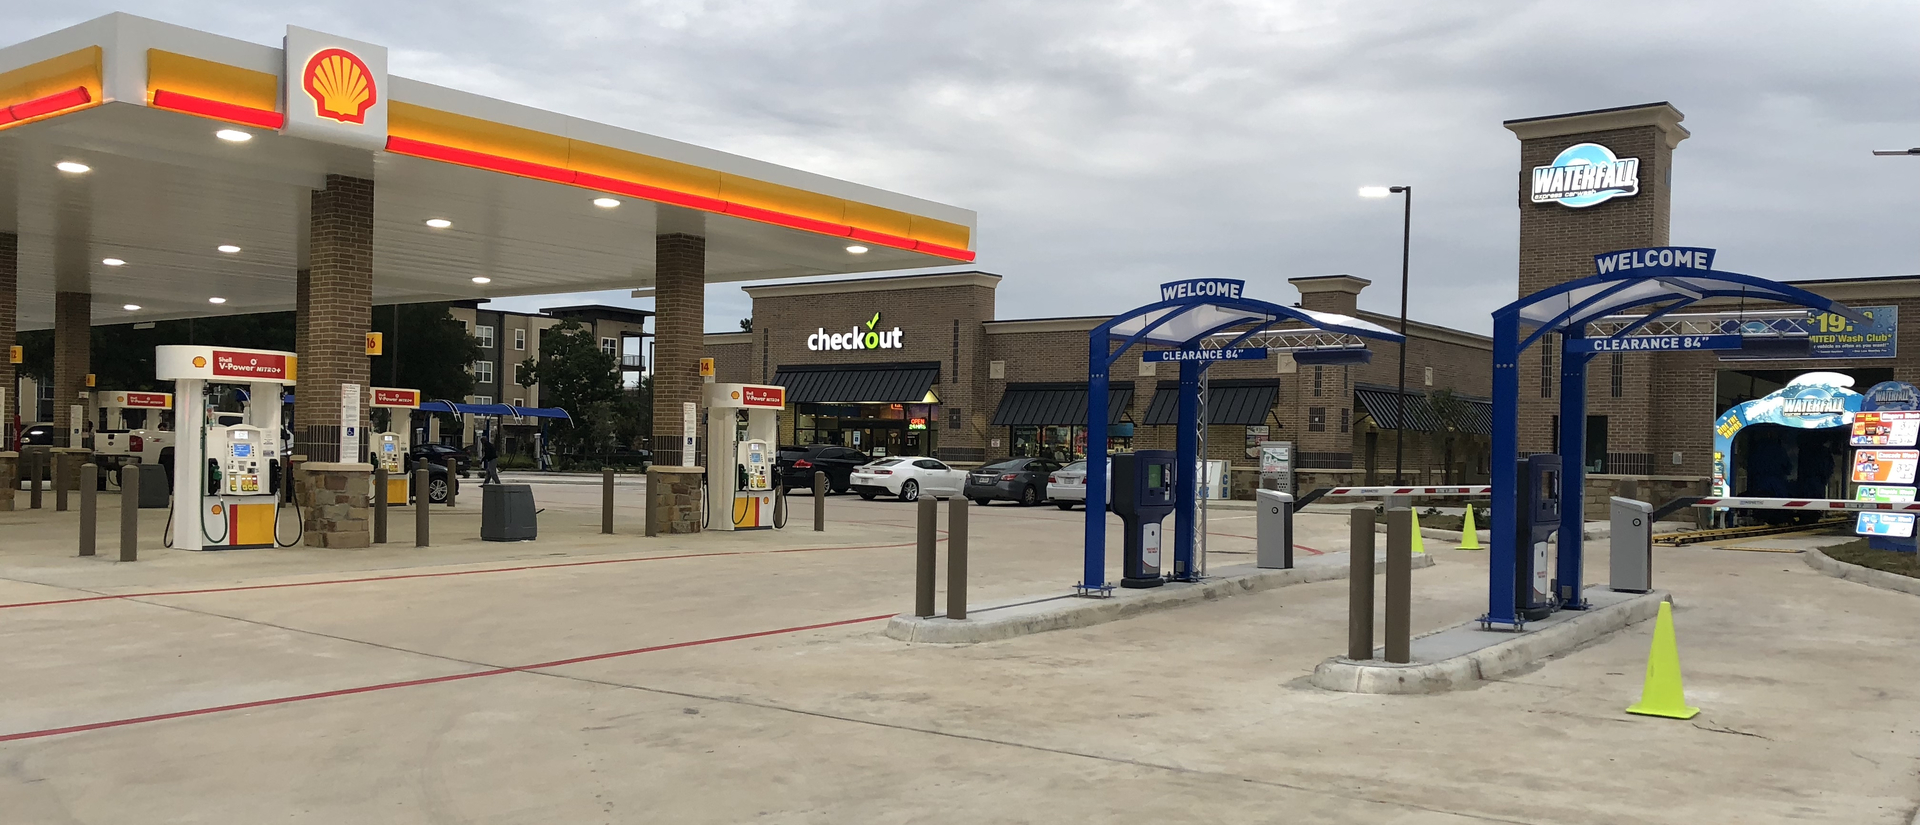 Checkout Food Stores - Gas Station Near Me, Nearest Gas Station, Gas